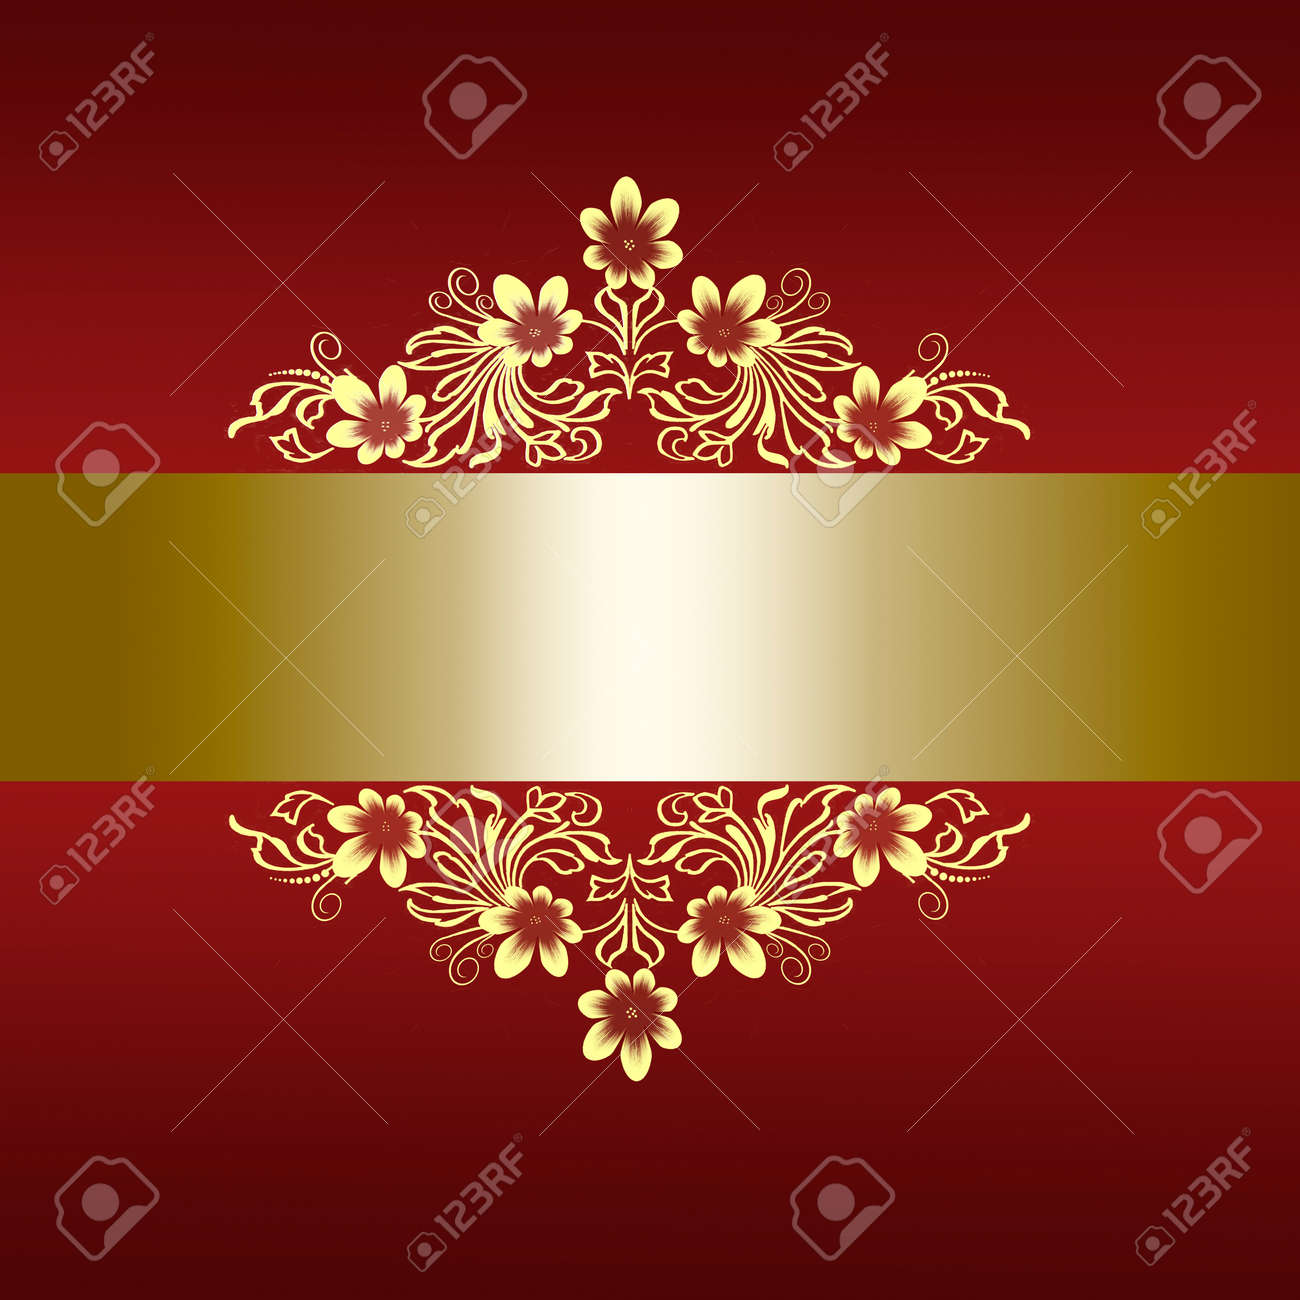 Elegant Red Border With Golden Floral Ornament For Wedding ...